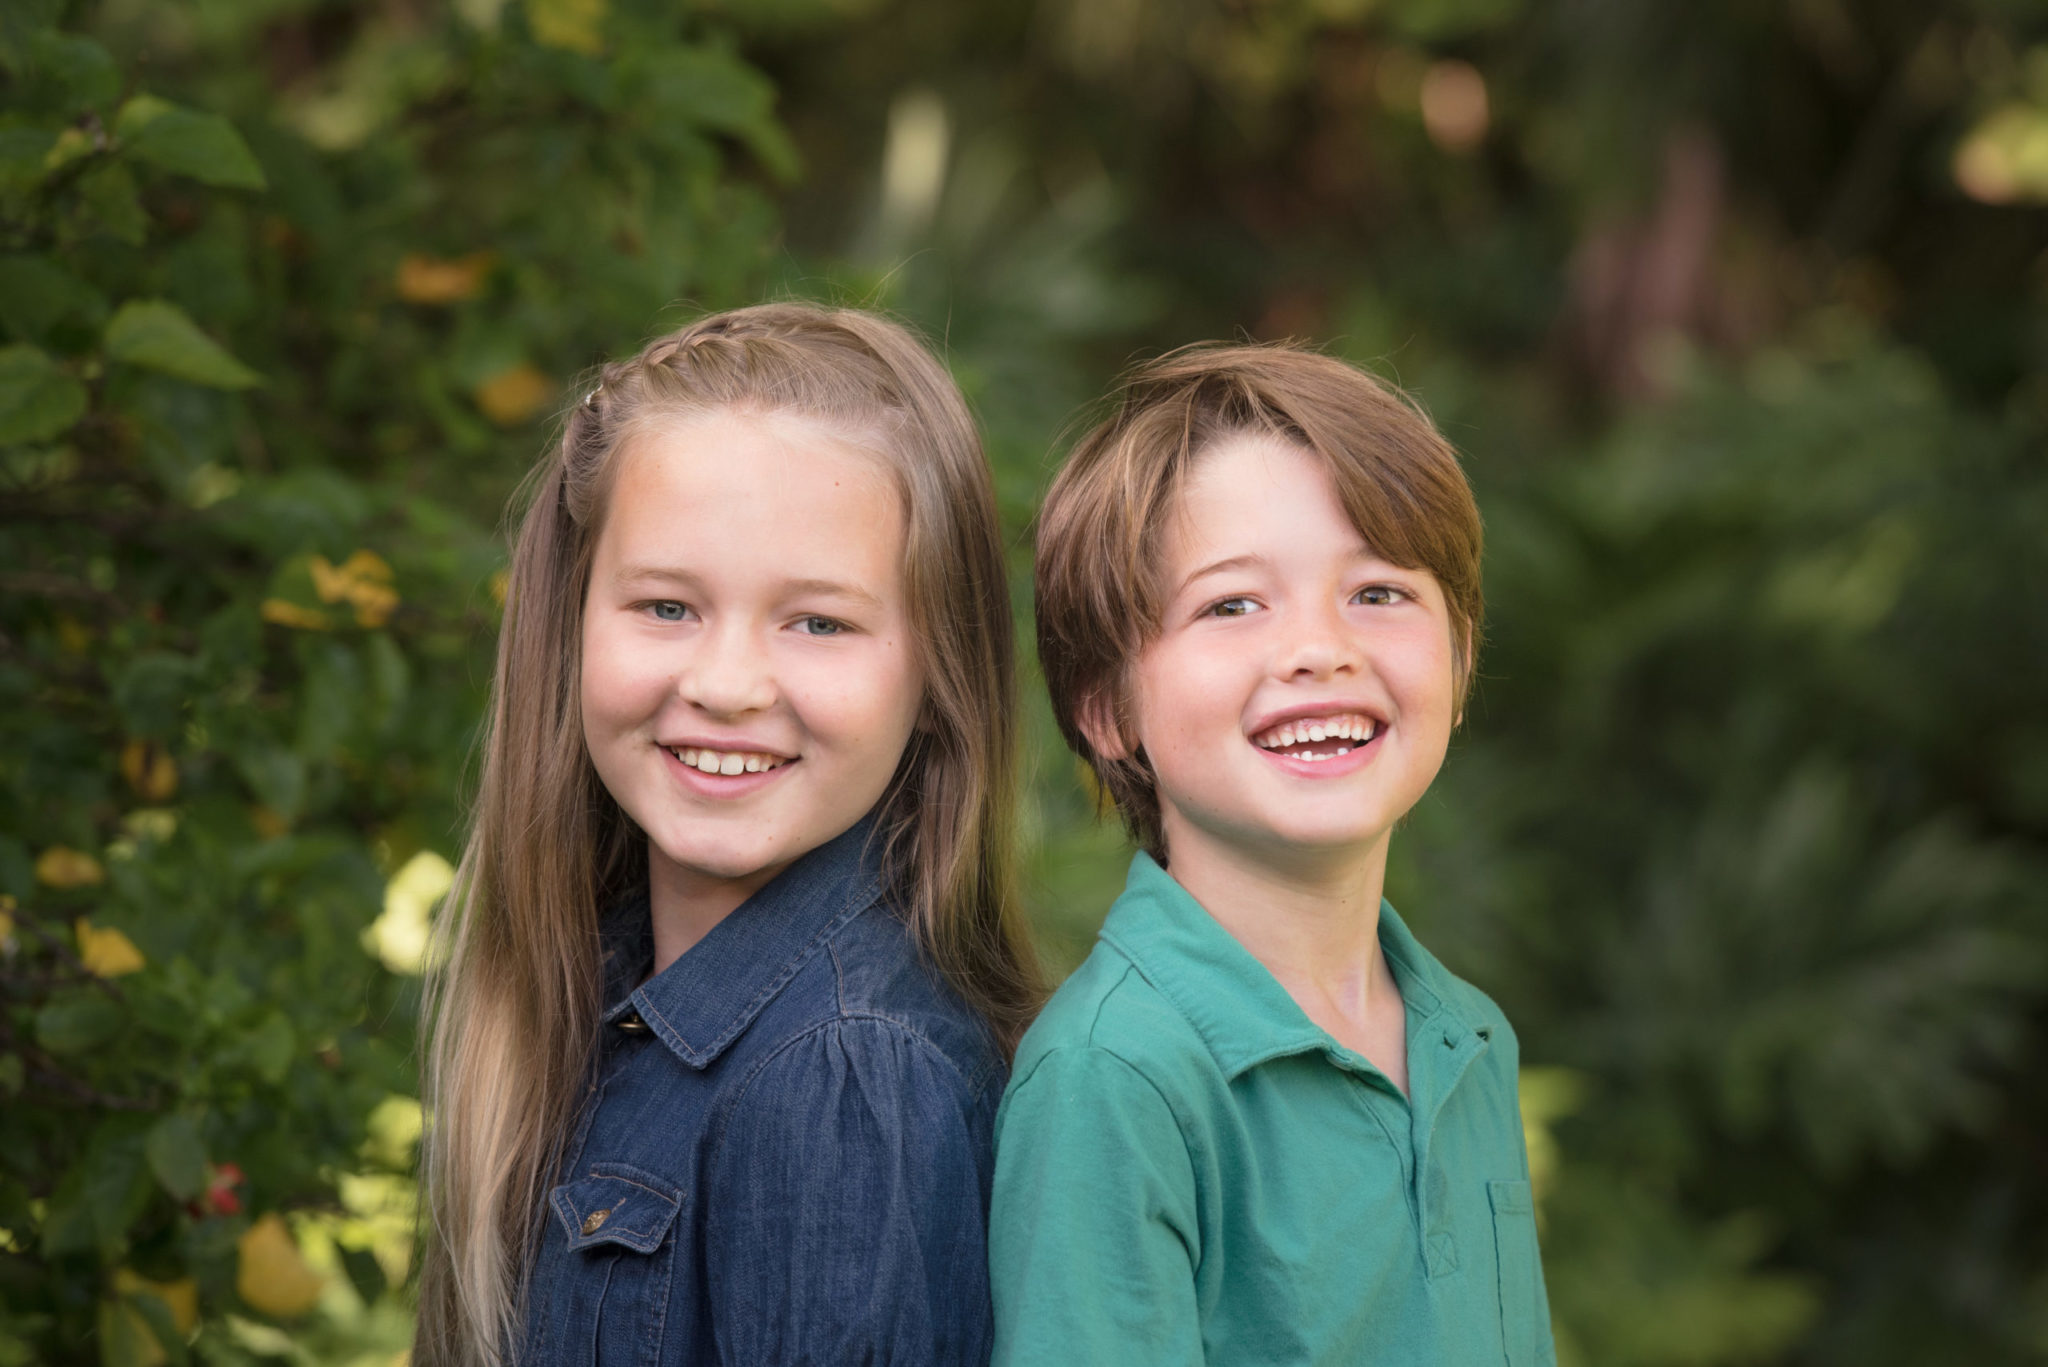 Our Dos & Don'ts of Managing Sibling Relationships